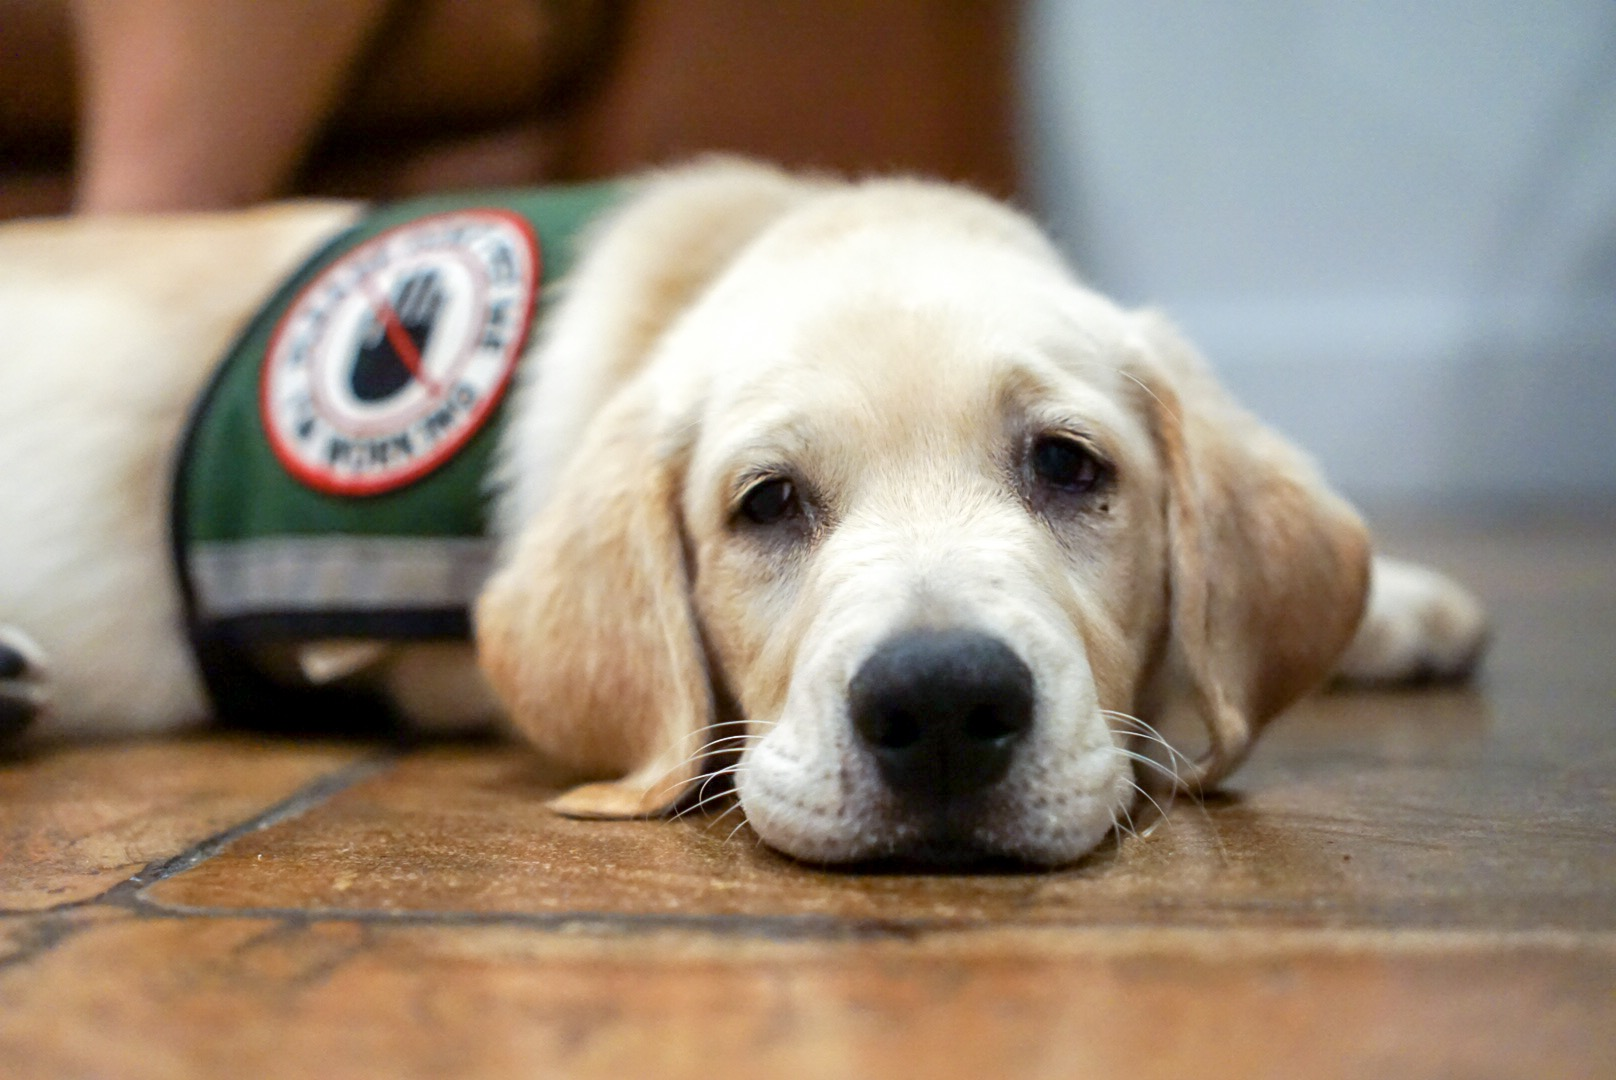 File:Service dog in training resting.jpg - Wikimedia Commons